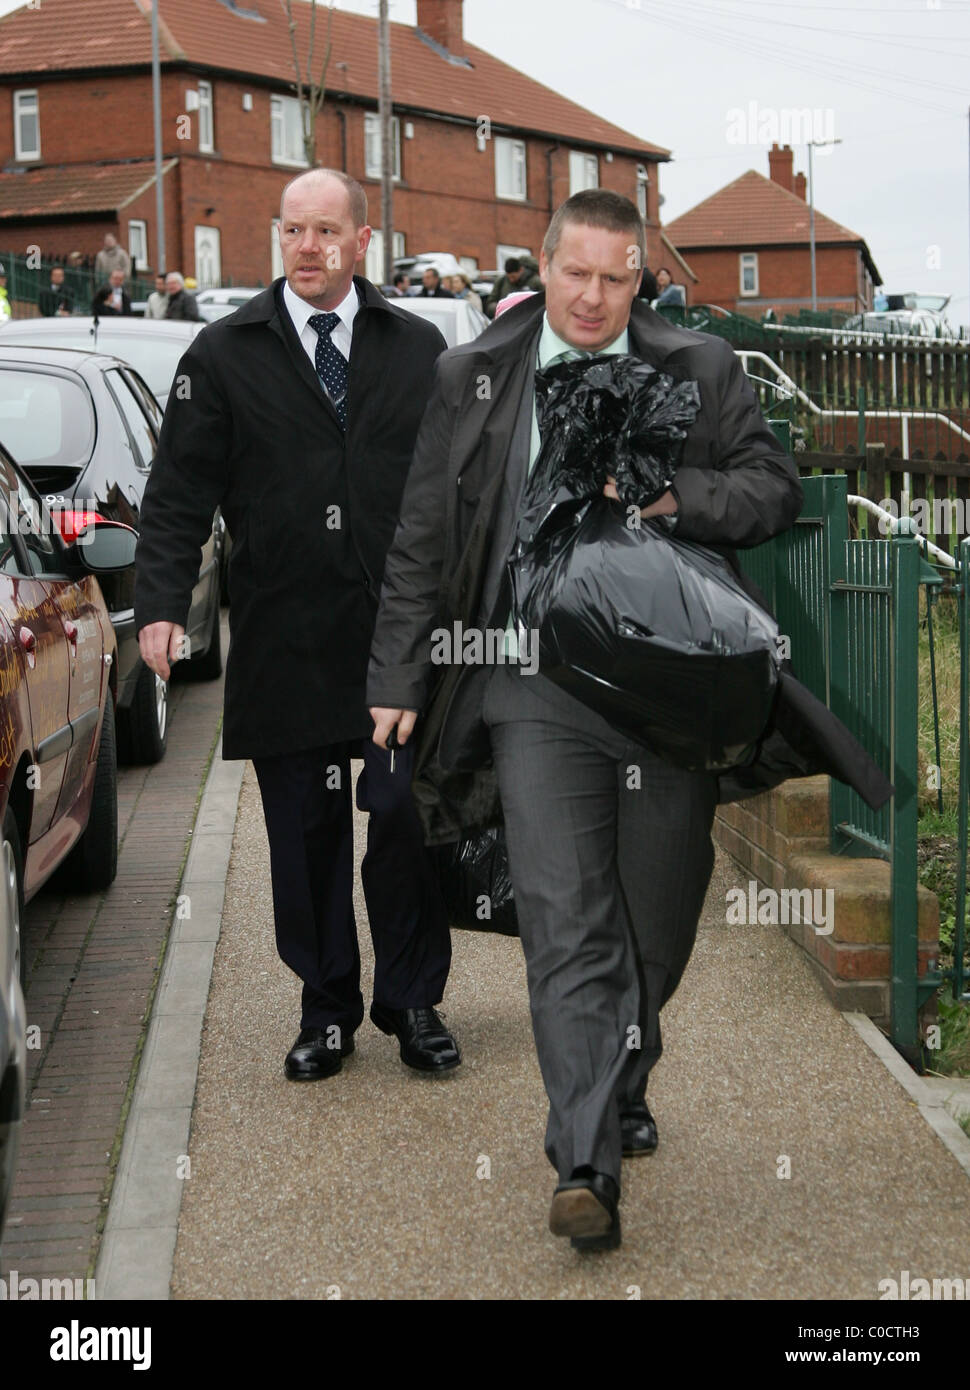 Detectives have removed items from the home of Craig Meehan, 22, stepfather of abducted schoolgirl Shannon Matthews, - Stock Image